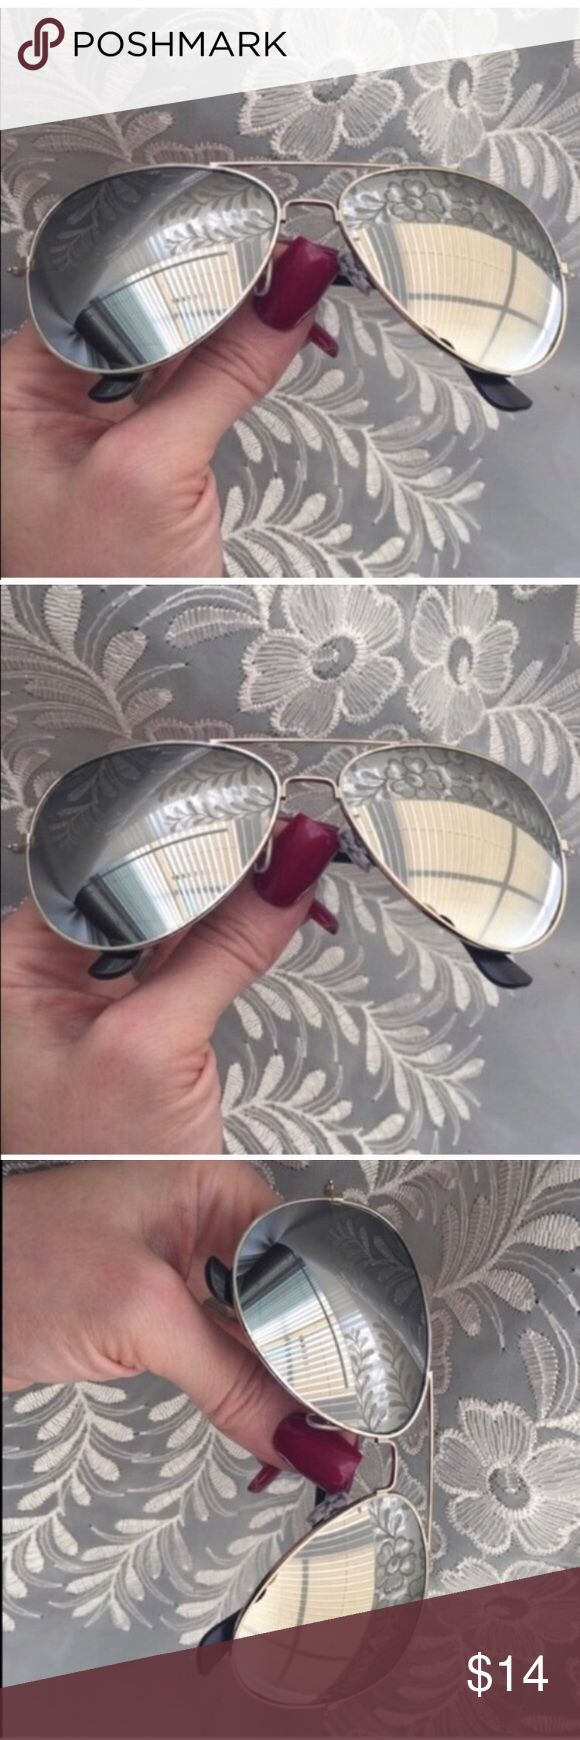 """☀️NEW☀️ Silver Mirror Aviators Silver mirror lenses. Silver frames . Black arm/ear guards. Approximately 5.75"""" across frame front, 2 x 2.75"""" each lens frame. Fit not guaranteed. All images show example of actual stocked glasses. Brand new and unworn, without tag. Drawstring pouch and small lens cloth included. No case. No brand. I do not model. No trades, no holding, no offsite payment.     ❗️PRICE IS FIRM UNLESS BUNDLED❗️ Leoninus Accessories Sunglasses"""